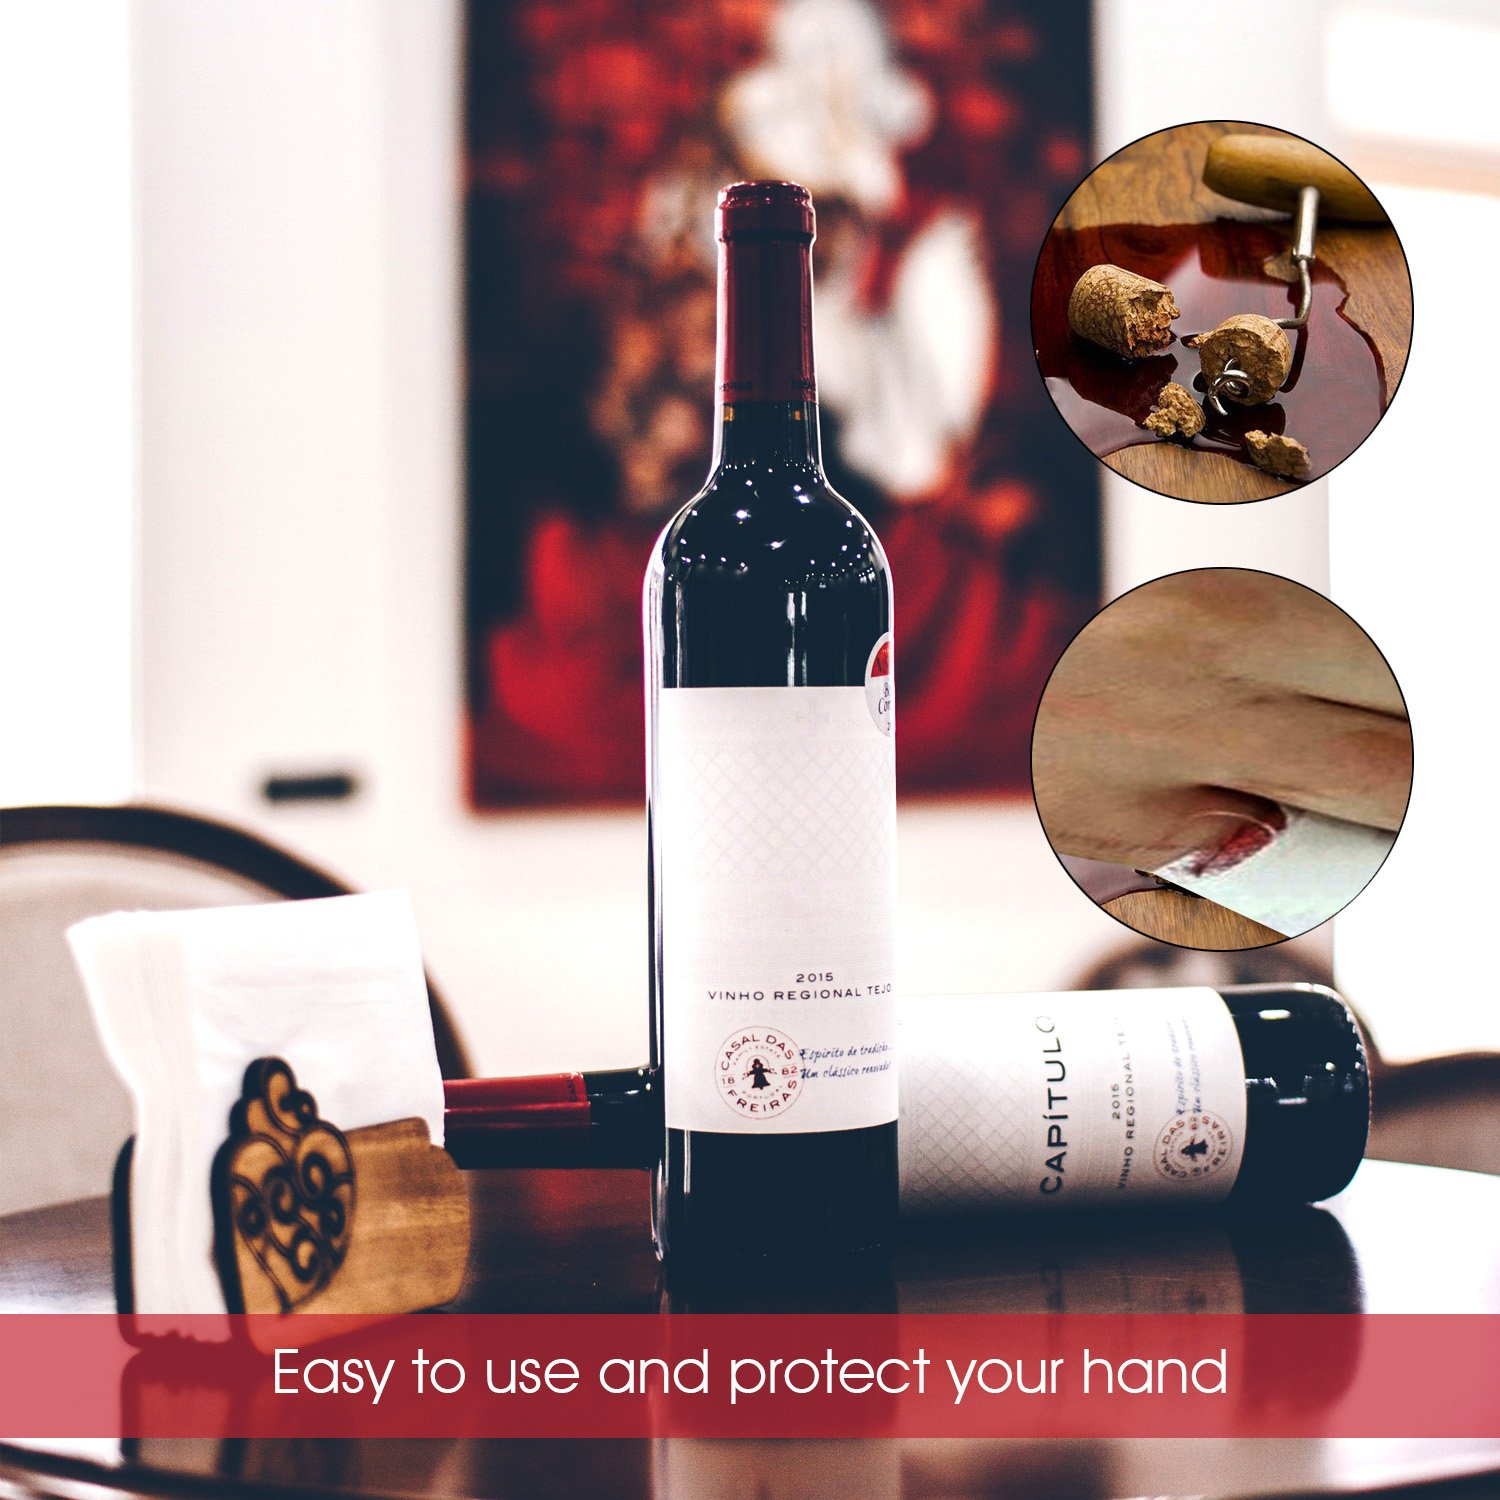 Electric Wine Opener Gift Set, Kimfly luxurious Rechargeable Wine Bottle Opener, Cordless Corkscrew, Stainless Steel Automatic Wine Opener With Foil Cutter, Wine Stopper, Wine Aerator by Kimfly (Image #5)